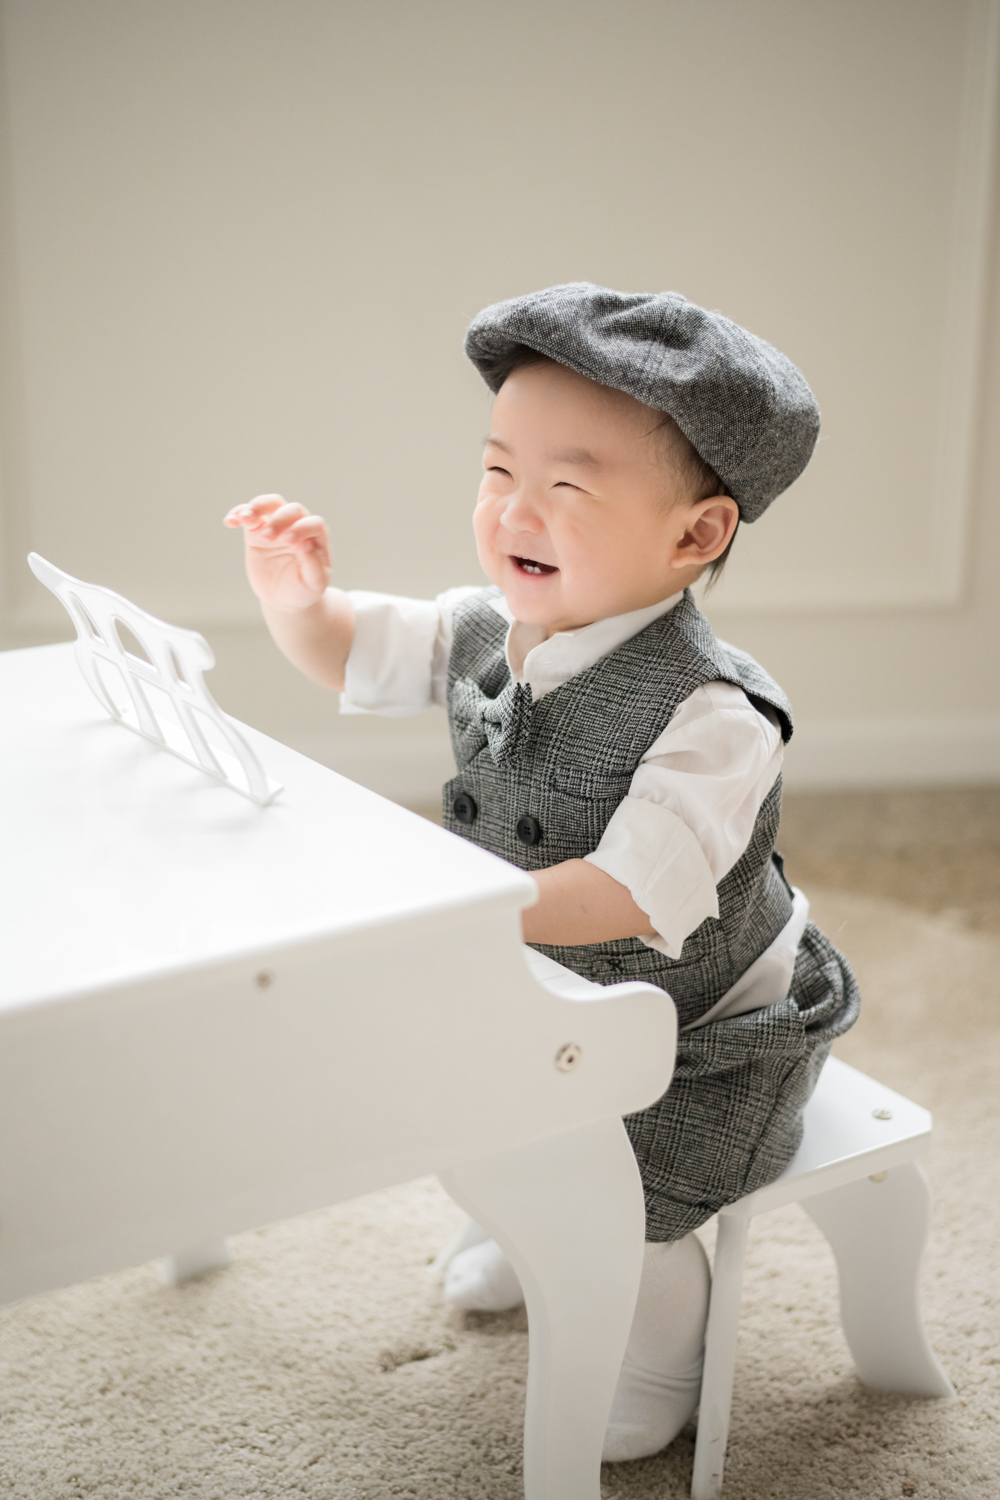 Baby plays piano and smiles during photoshoot in Chicago.